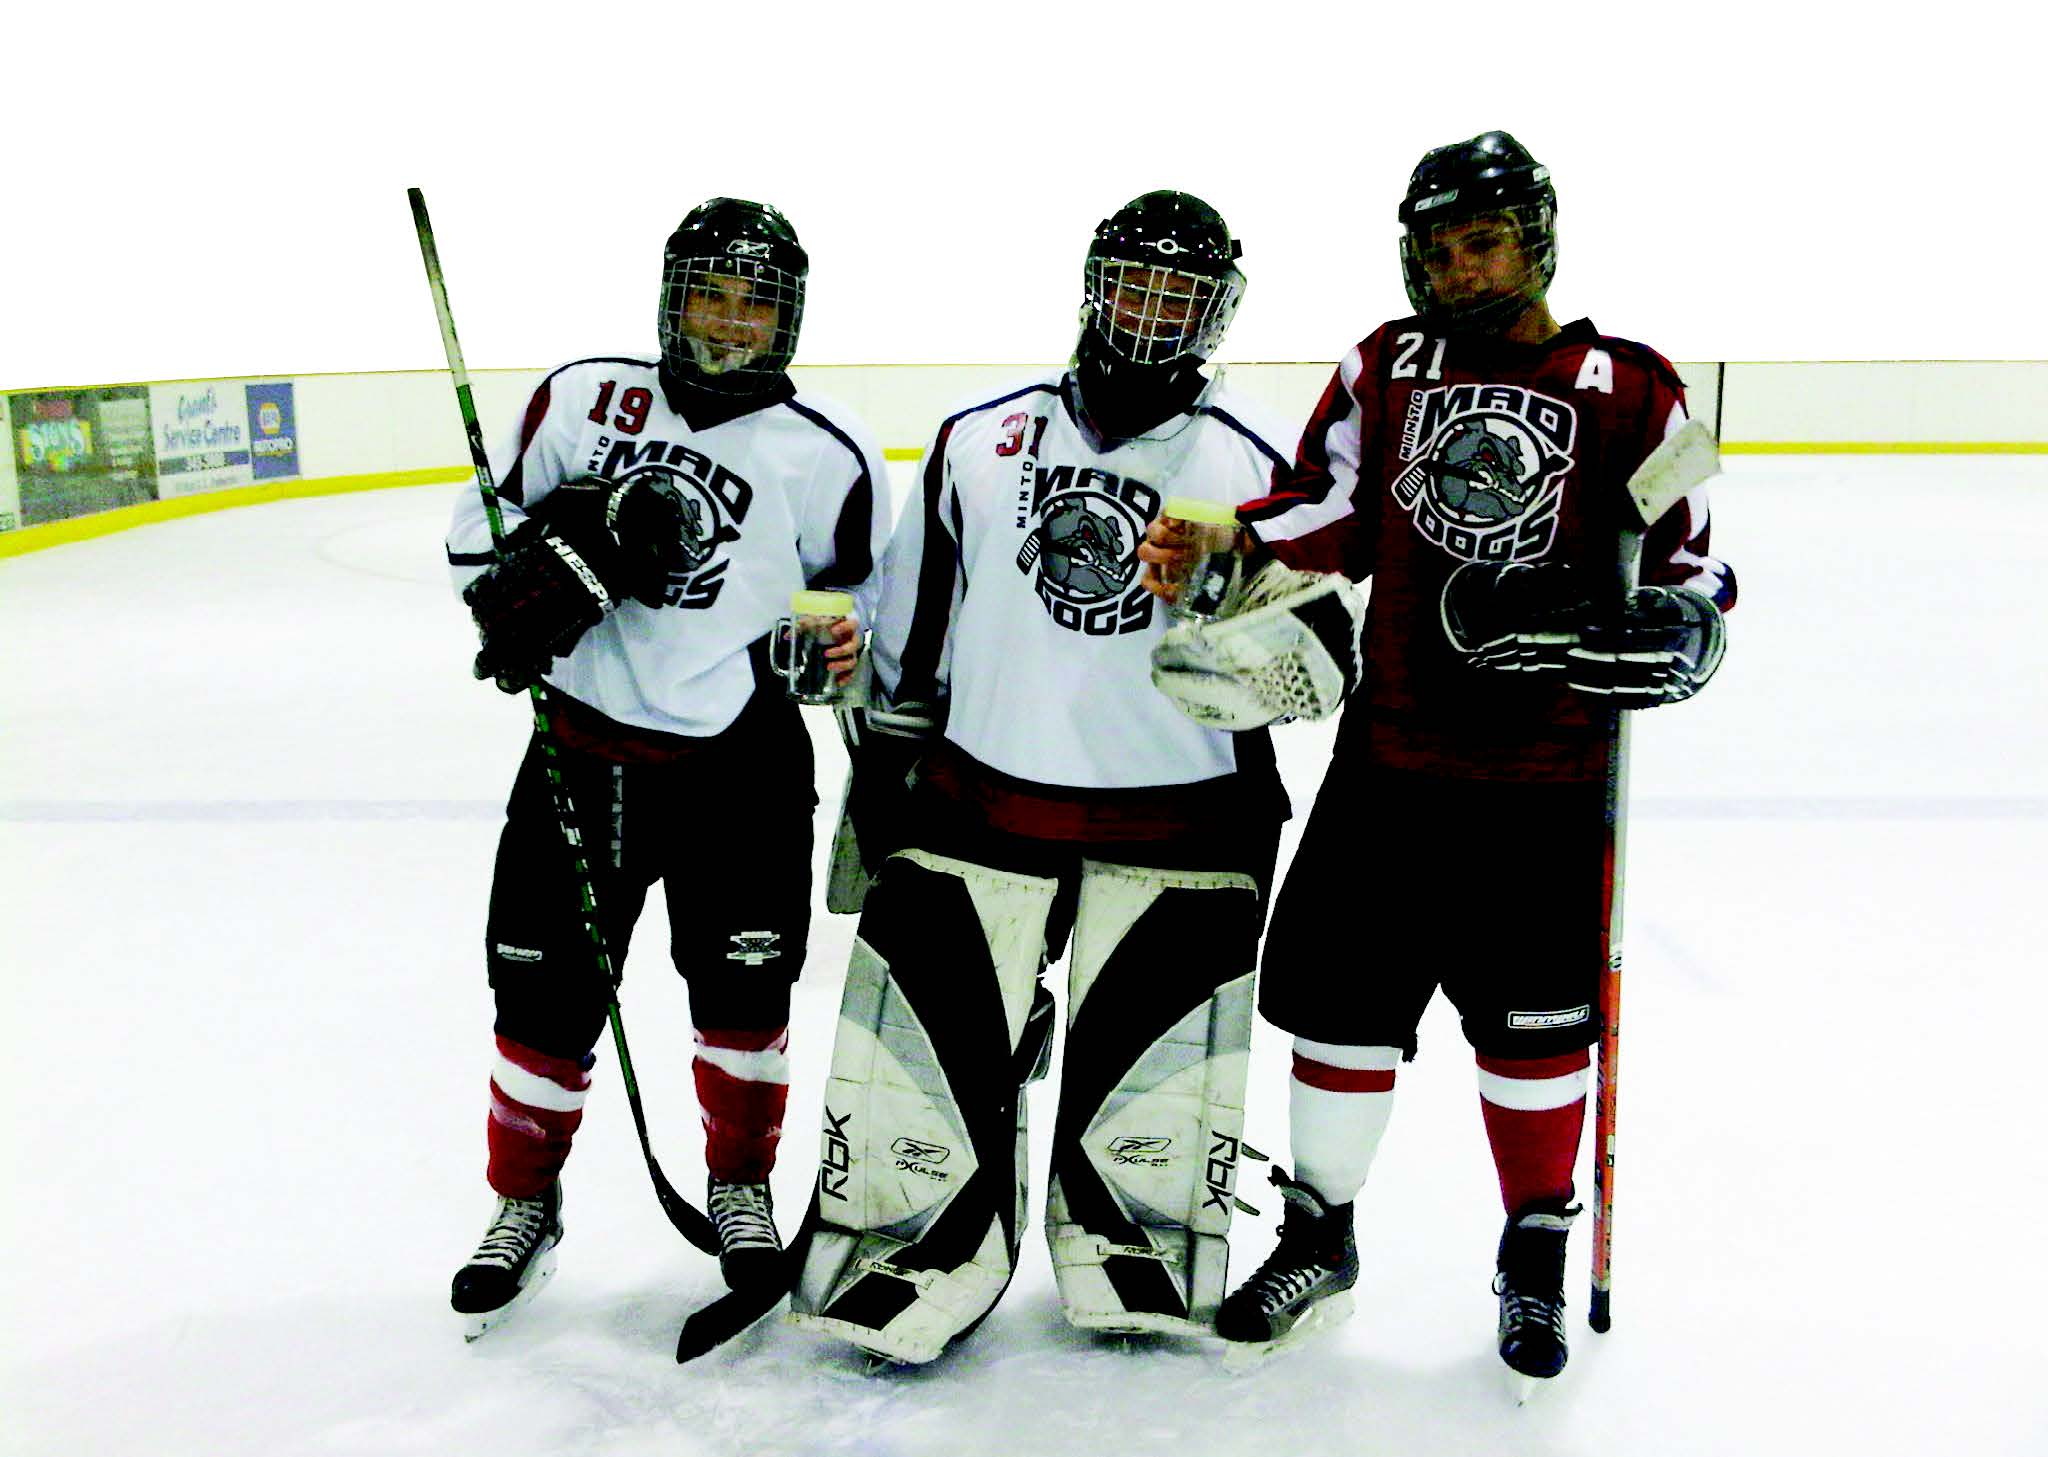 Minto Mad Dogs, from left: Anthony McKinnon, Curtis Ferguson and Zach Leslie competed for the home side in the skills competition at the 2010 Minto Midget LL tourney. Greg Korber photo